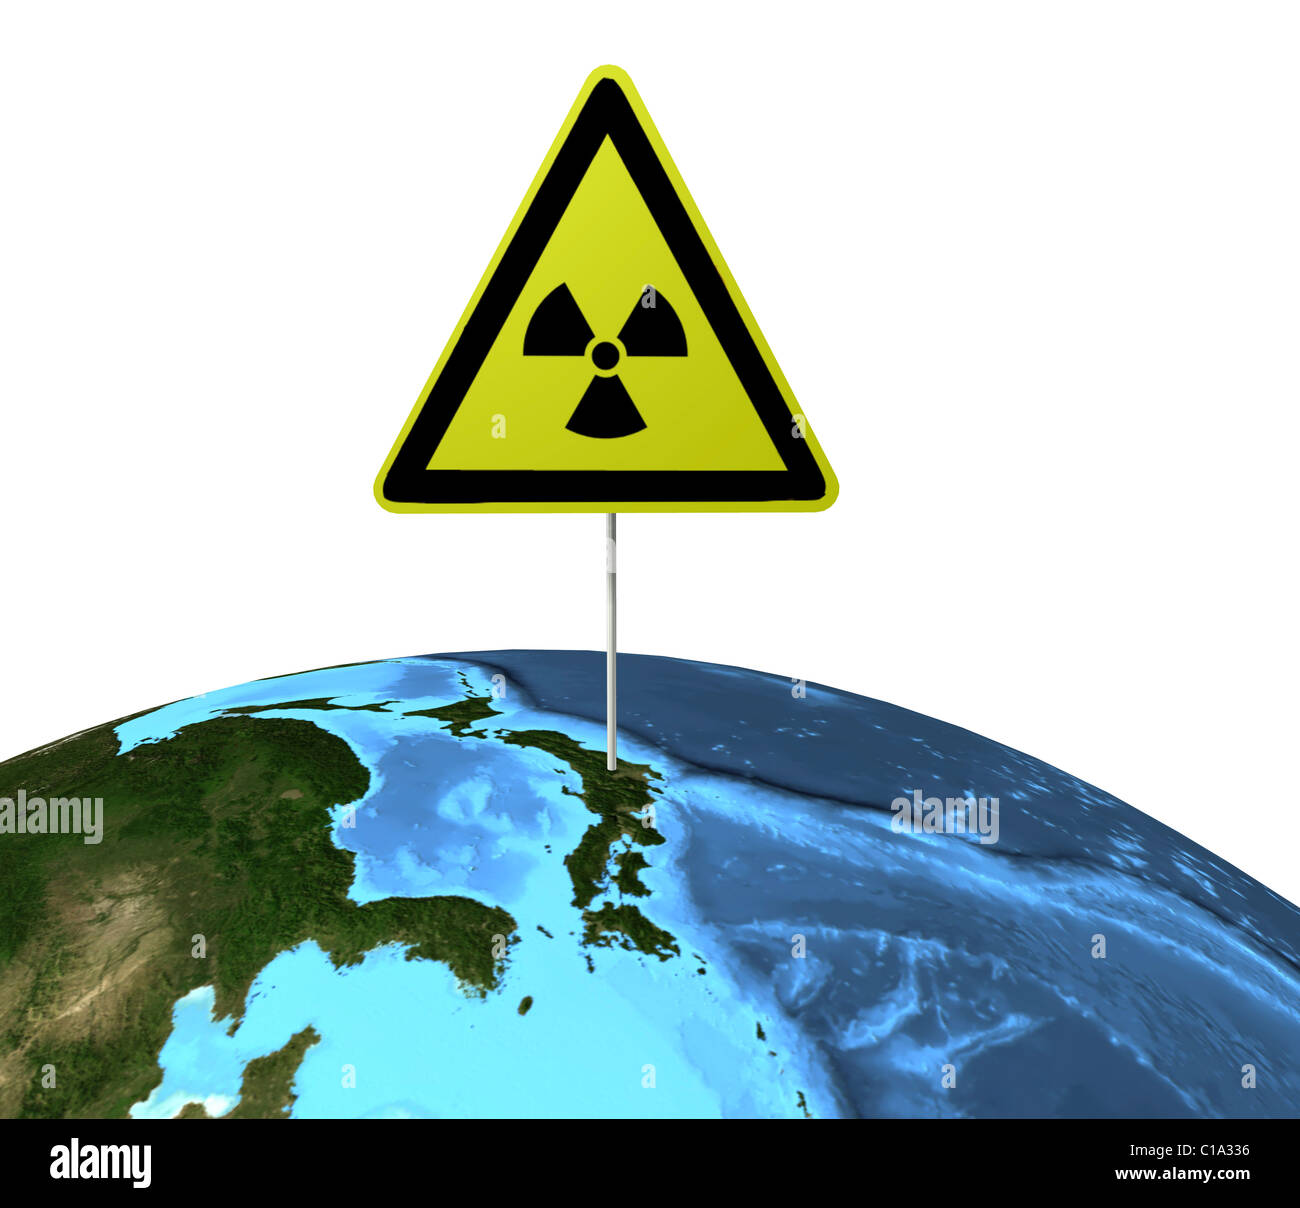 Symbolic image Nuclear disaster march 2011 japan - Stock Image